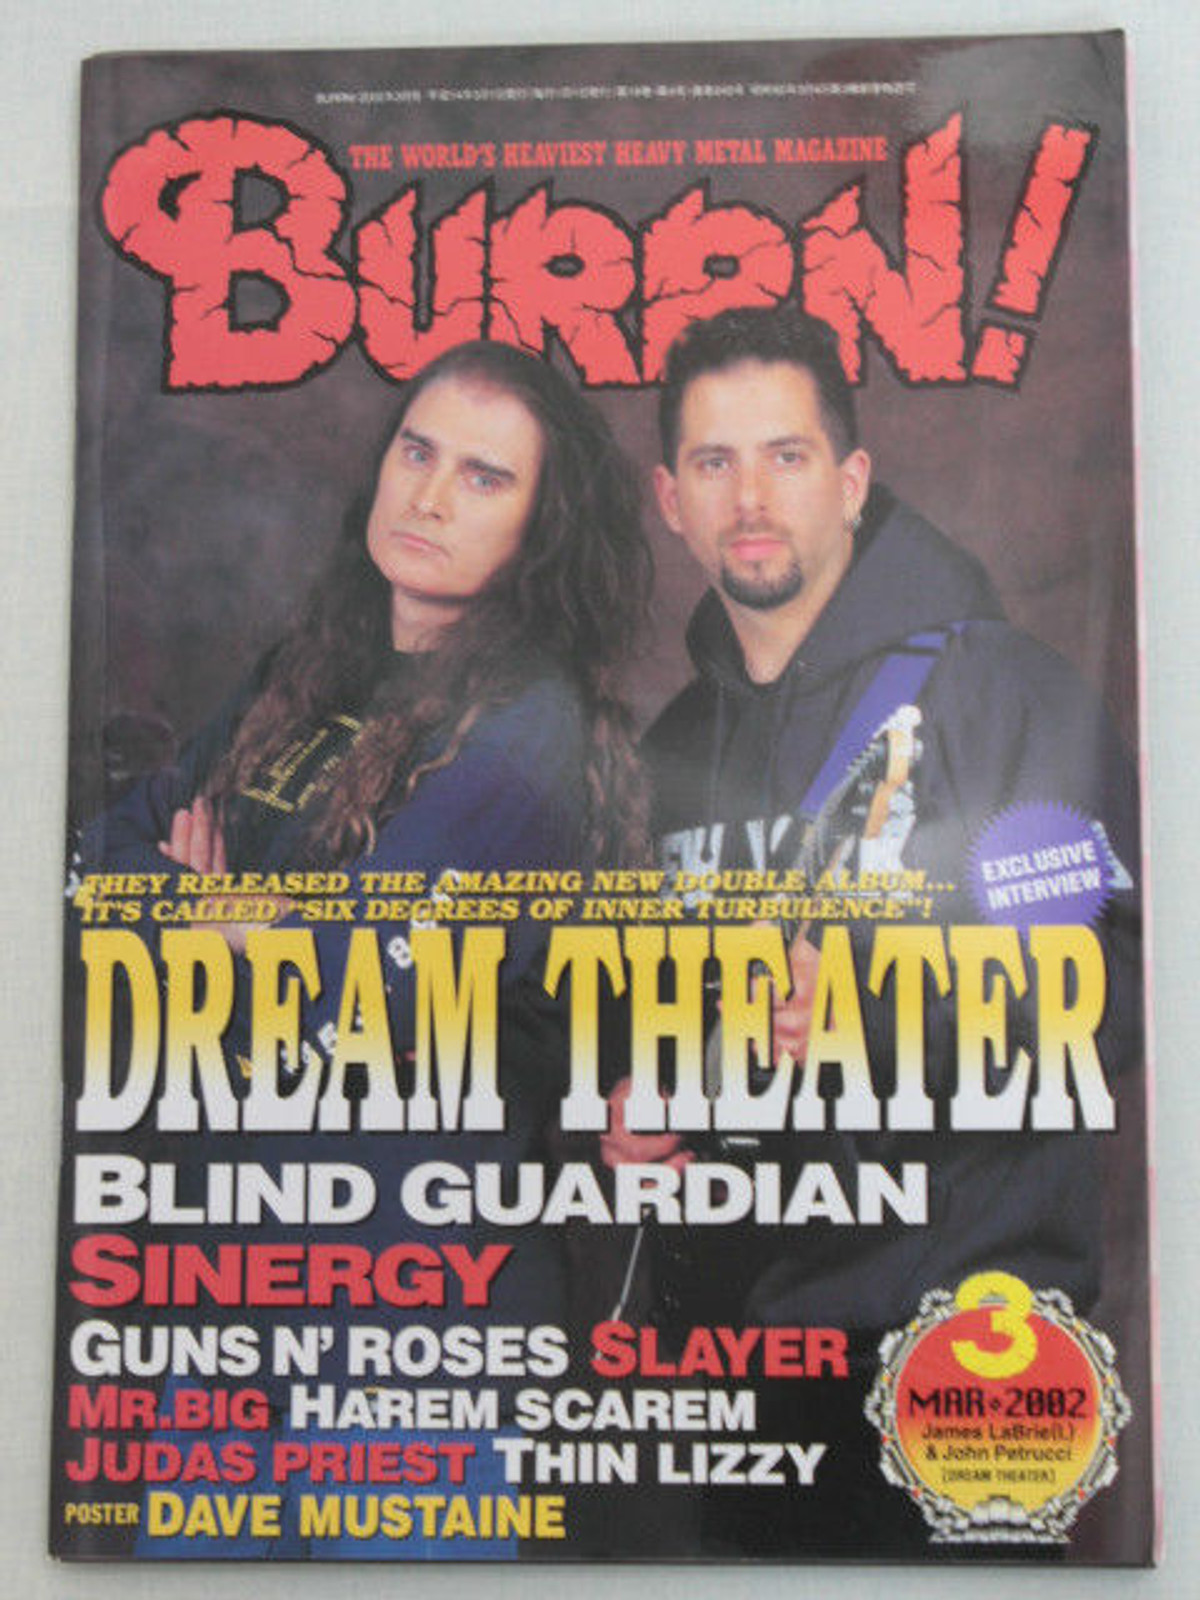 2002/03 BURRN! Japan Magazine DREAM THEATER/BLINF GUARDIAN/SINERGY/SLAYER/MR.BIG